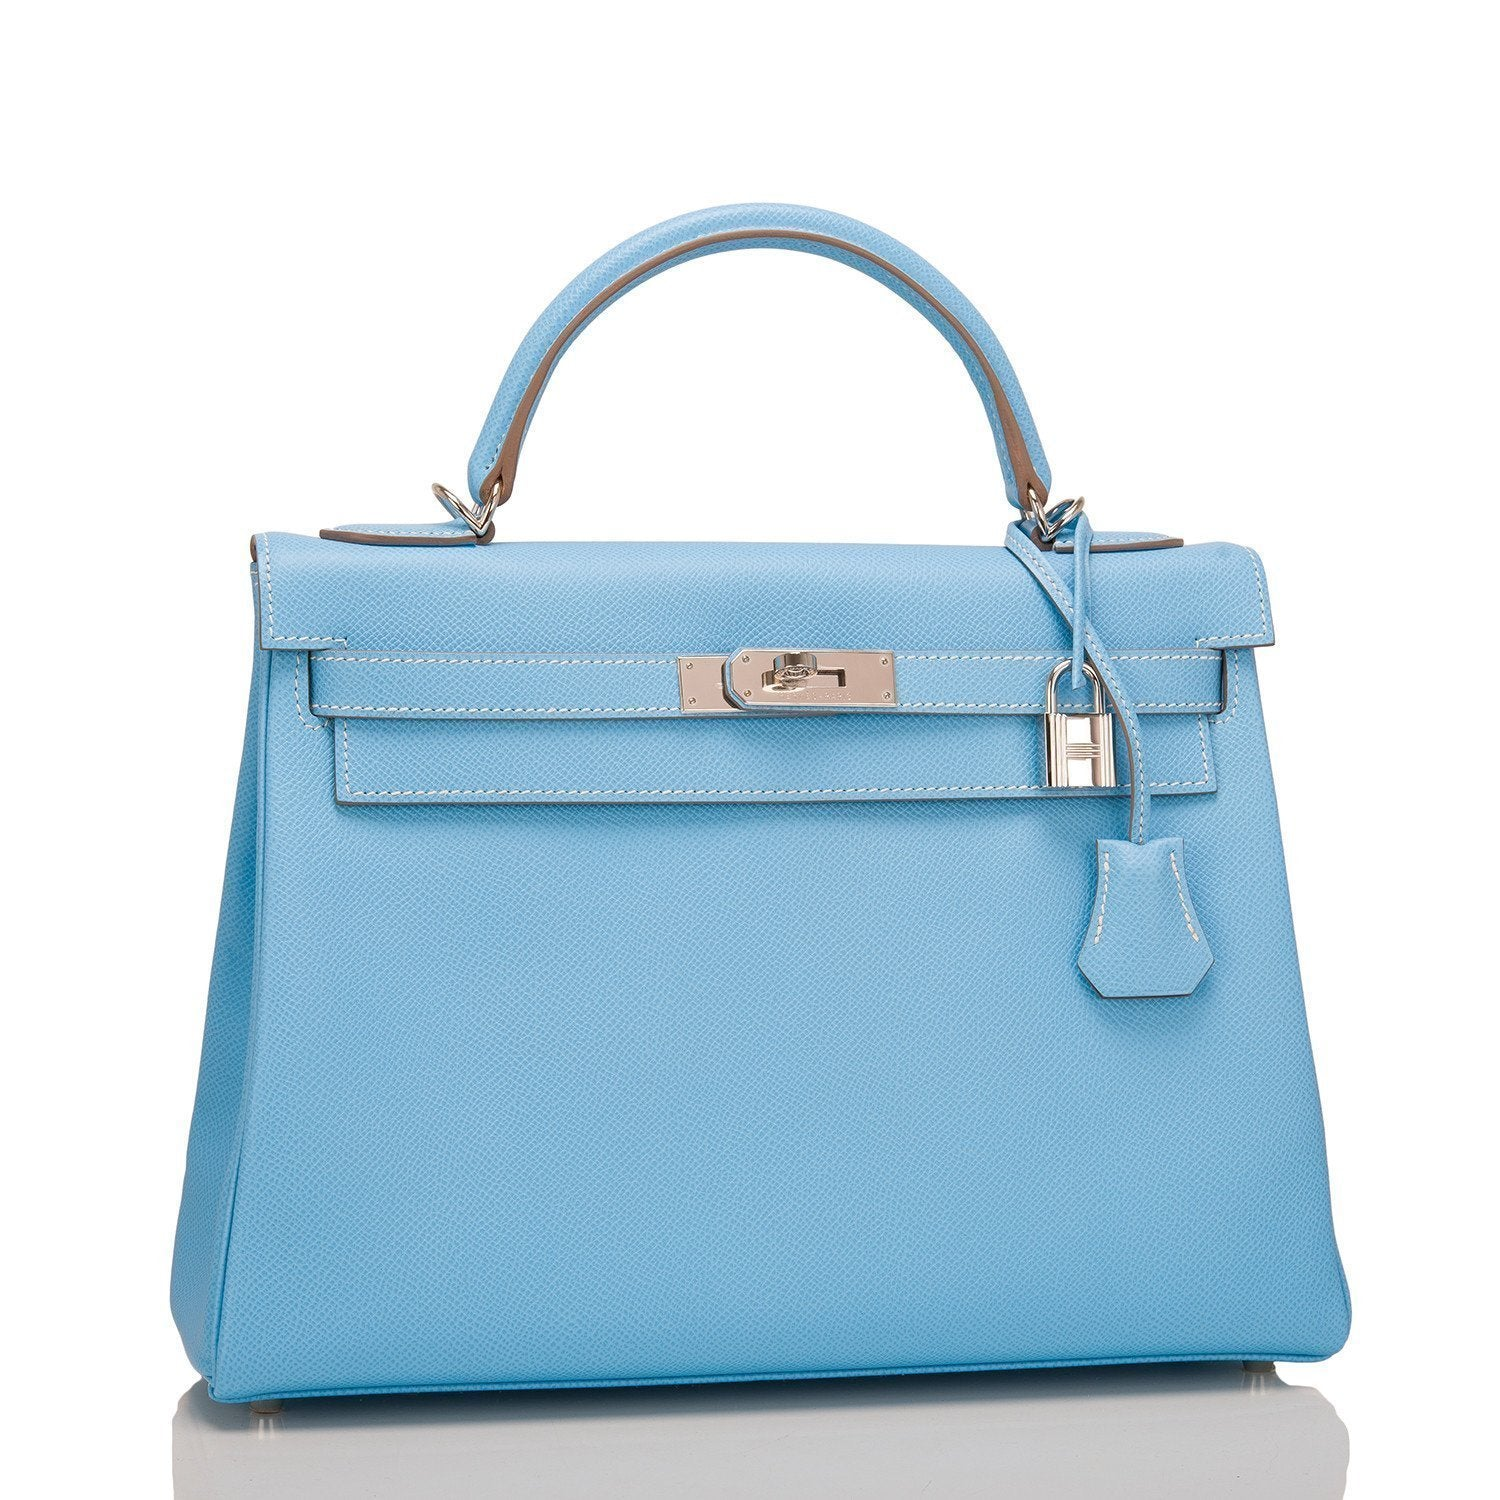 52c7ab2c7a Hermes Bi-color Celeste and Mykonos Epsom Retourne Candy Kelly 32cm –  Madison Avenue Couture